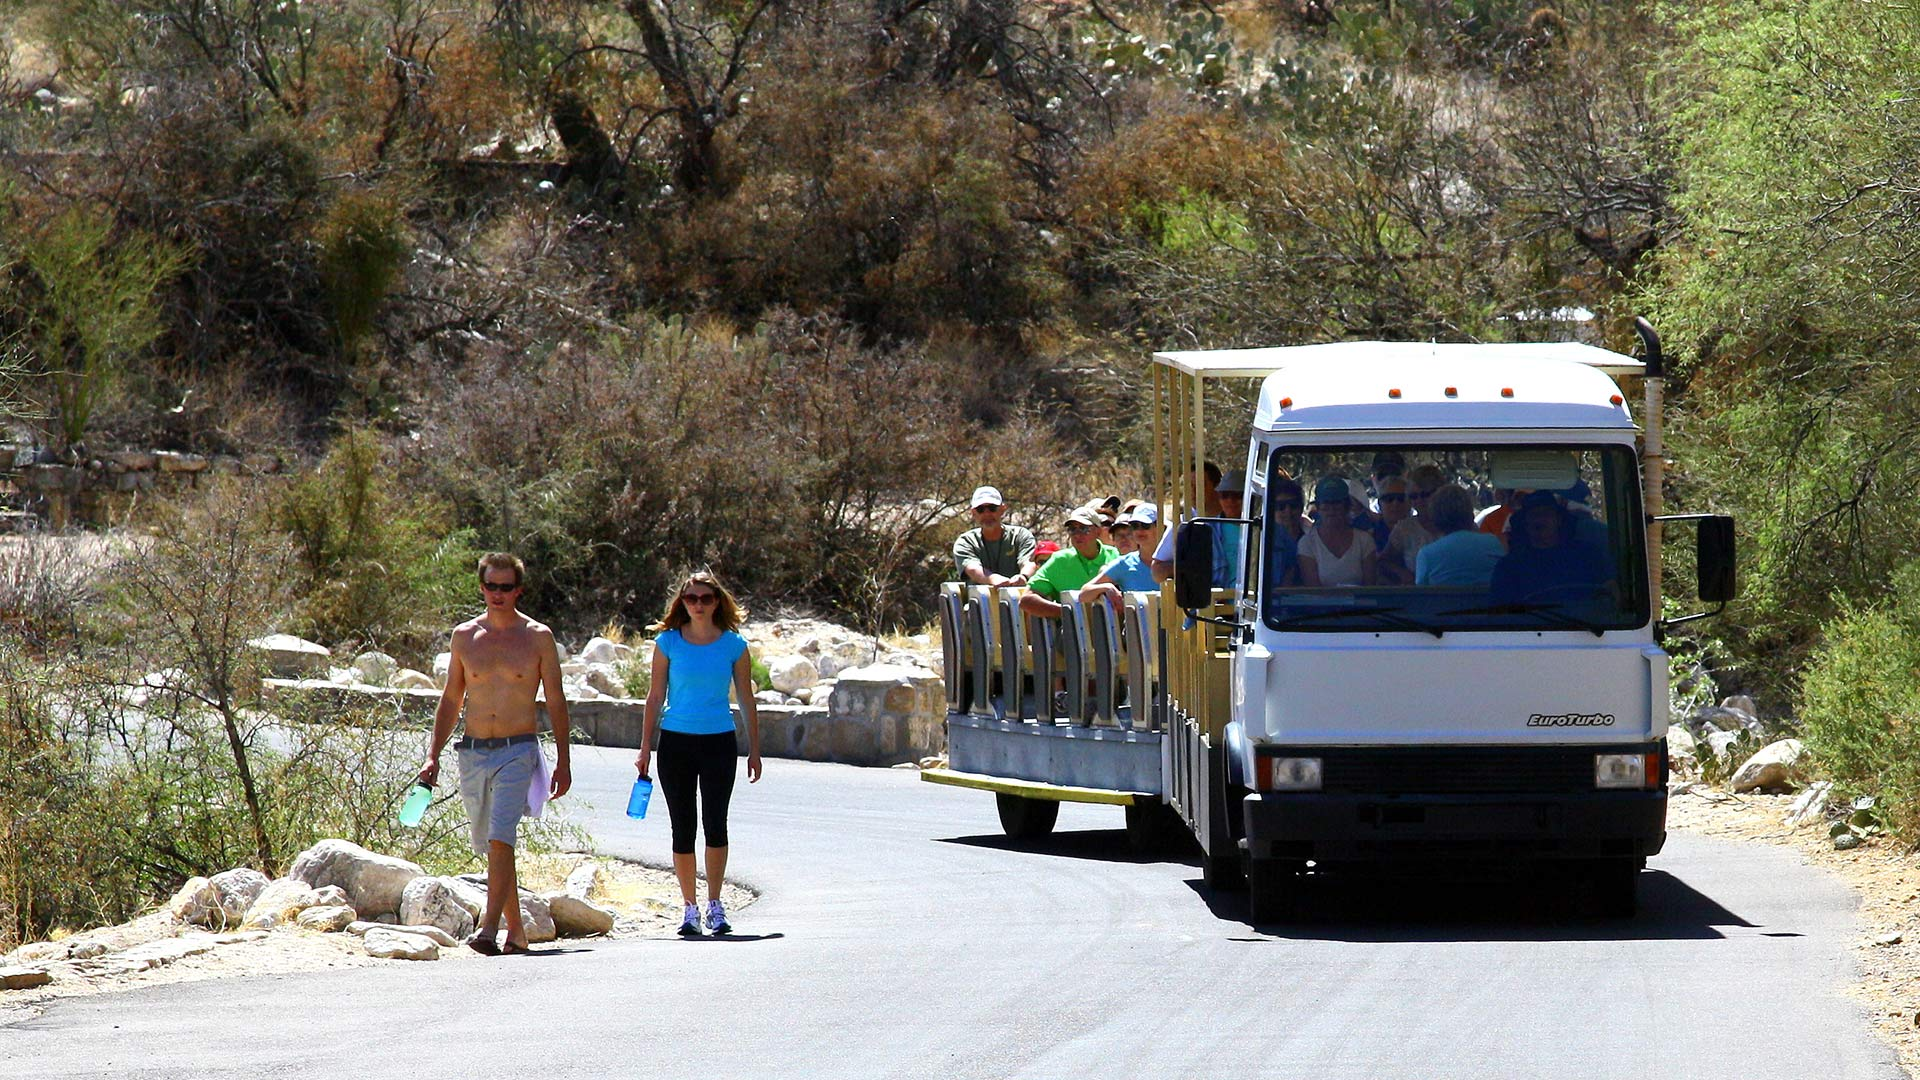 Sabino Canyon Shuttle hero